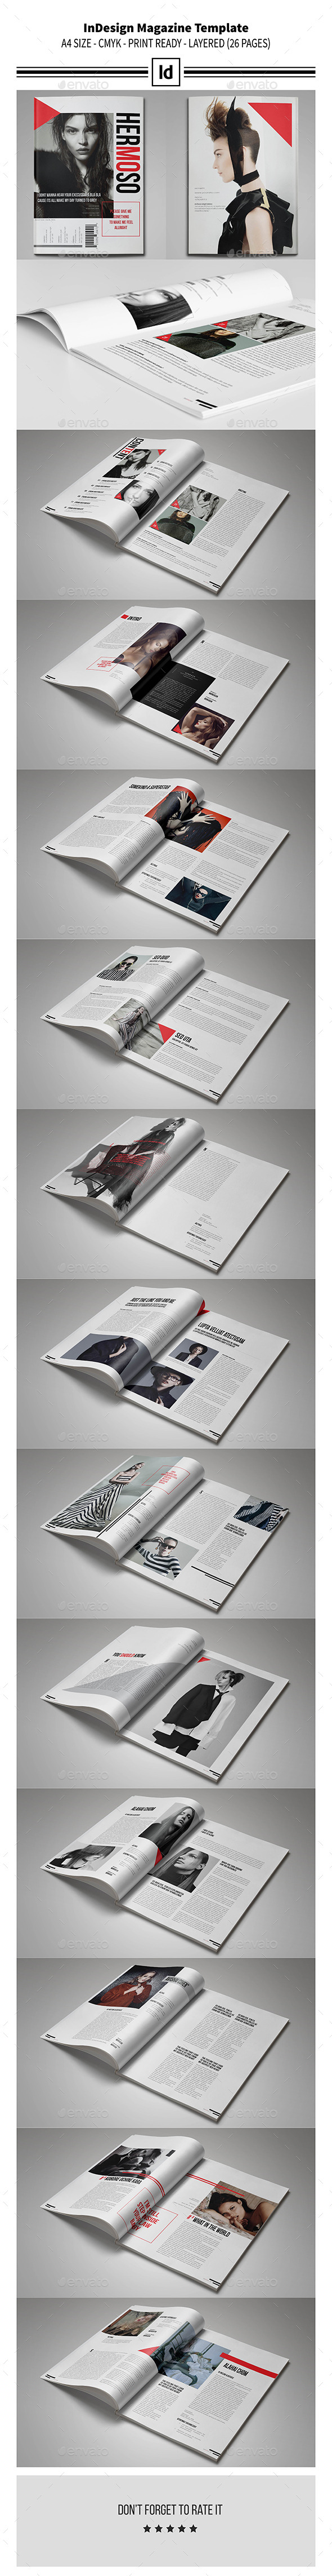 GraphicRiver Multipurpose InDesign Magazine Template 10919884